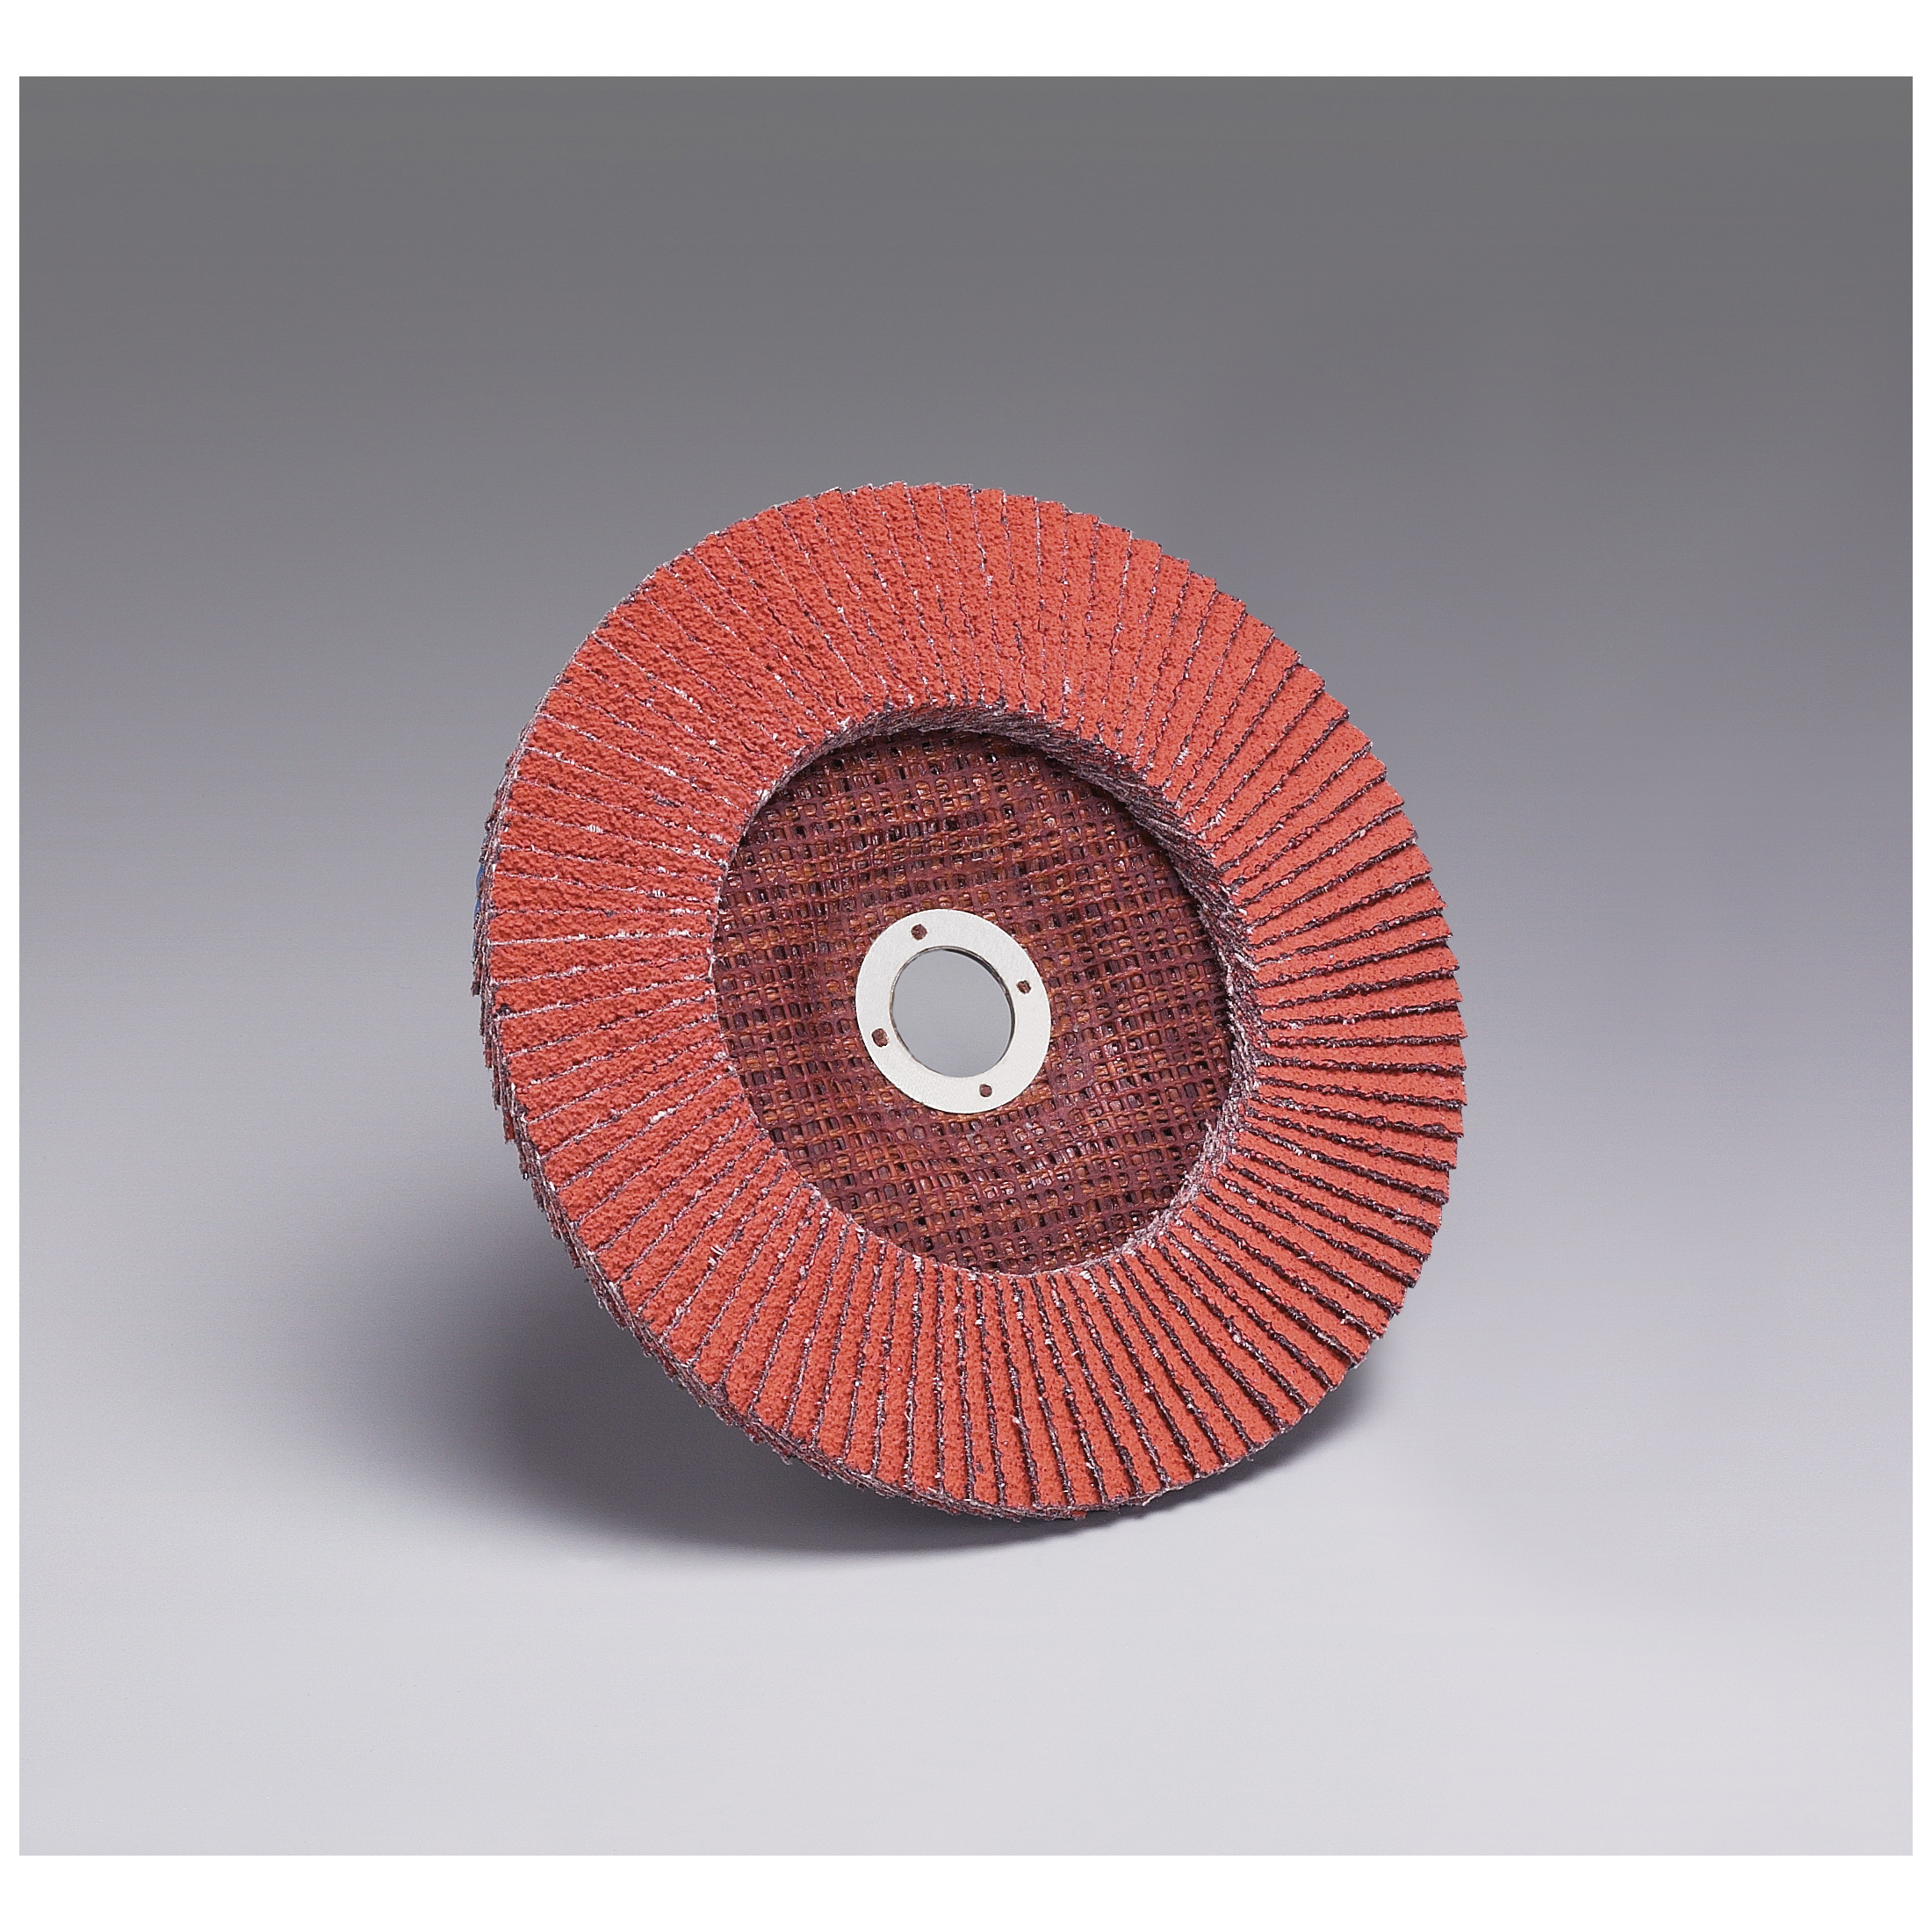 3M™ 051111-49612 Close Quick-Change Coated Abrasive Flap Disc, 7 in Dia, 7/8 in Center Hole, P120 Grit, Fine Grade, Ceramic Abrasive, Type 27 Disc